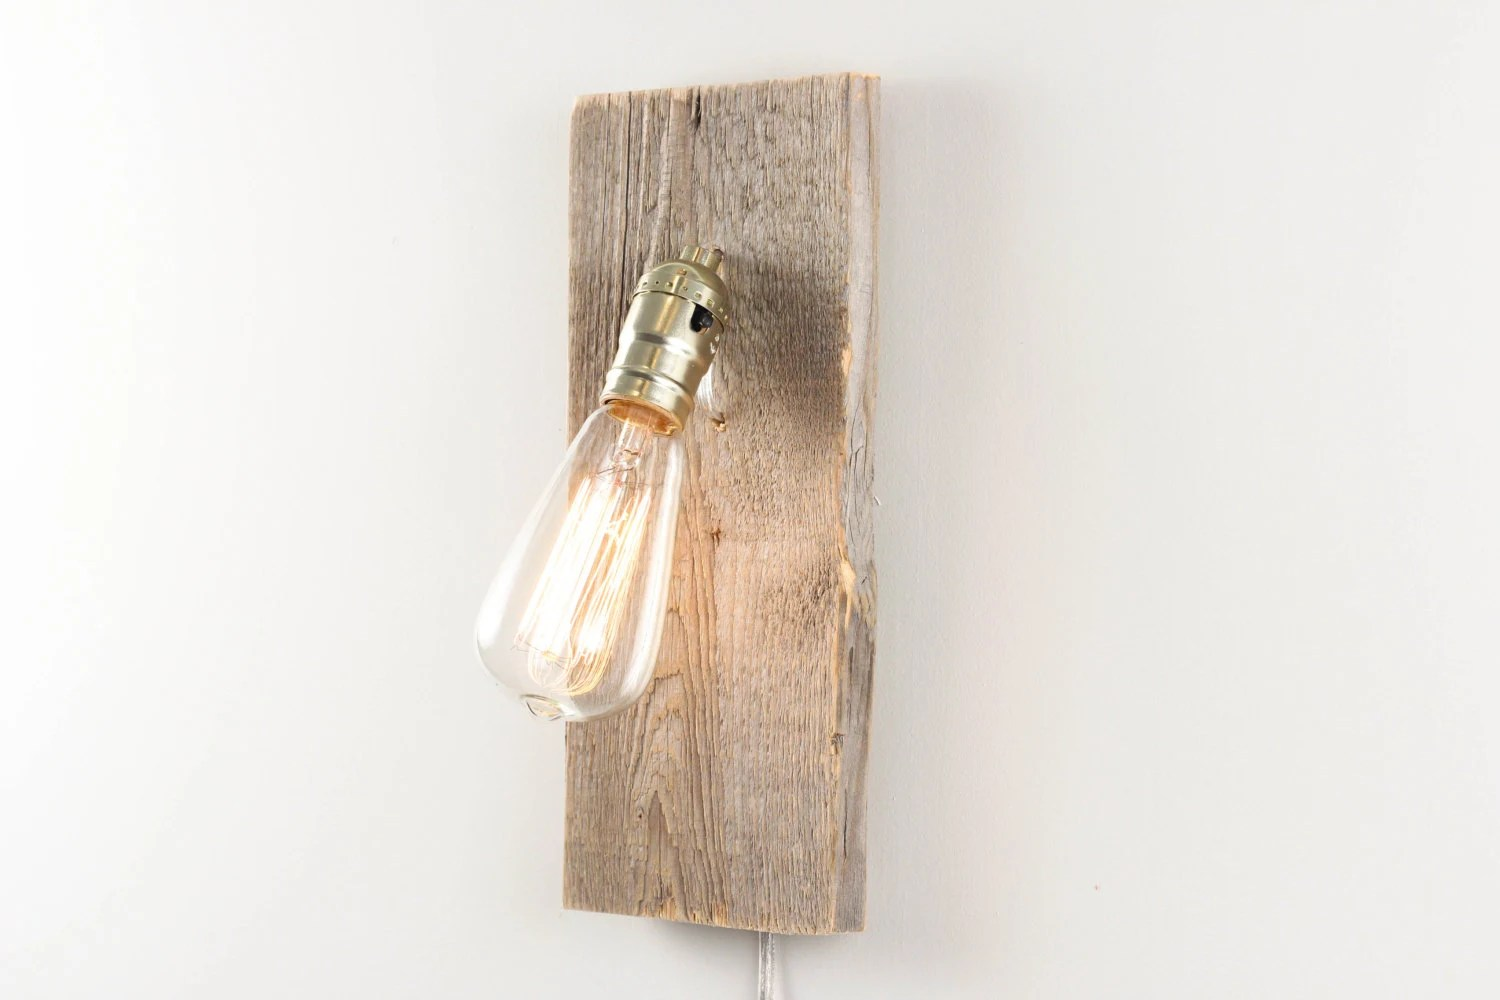 Salvaged Wood Wall Lamp- Rustic Wall Sconce, Salvaged Wood Lamp, Exposed Edison Bulb Lighting, Modern Rustic Decor - WorleysLighting